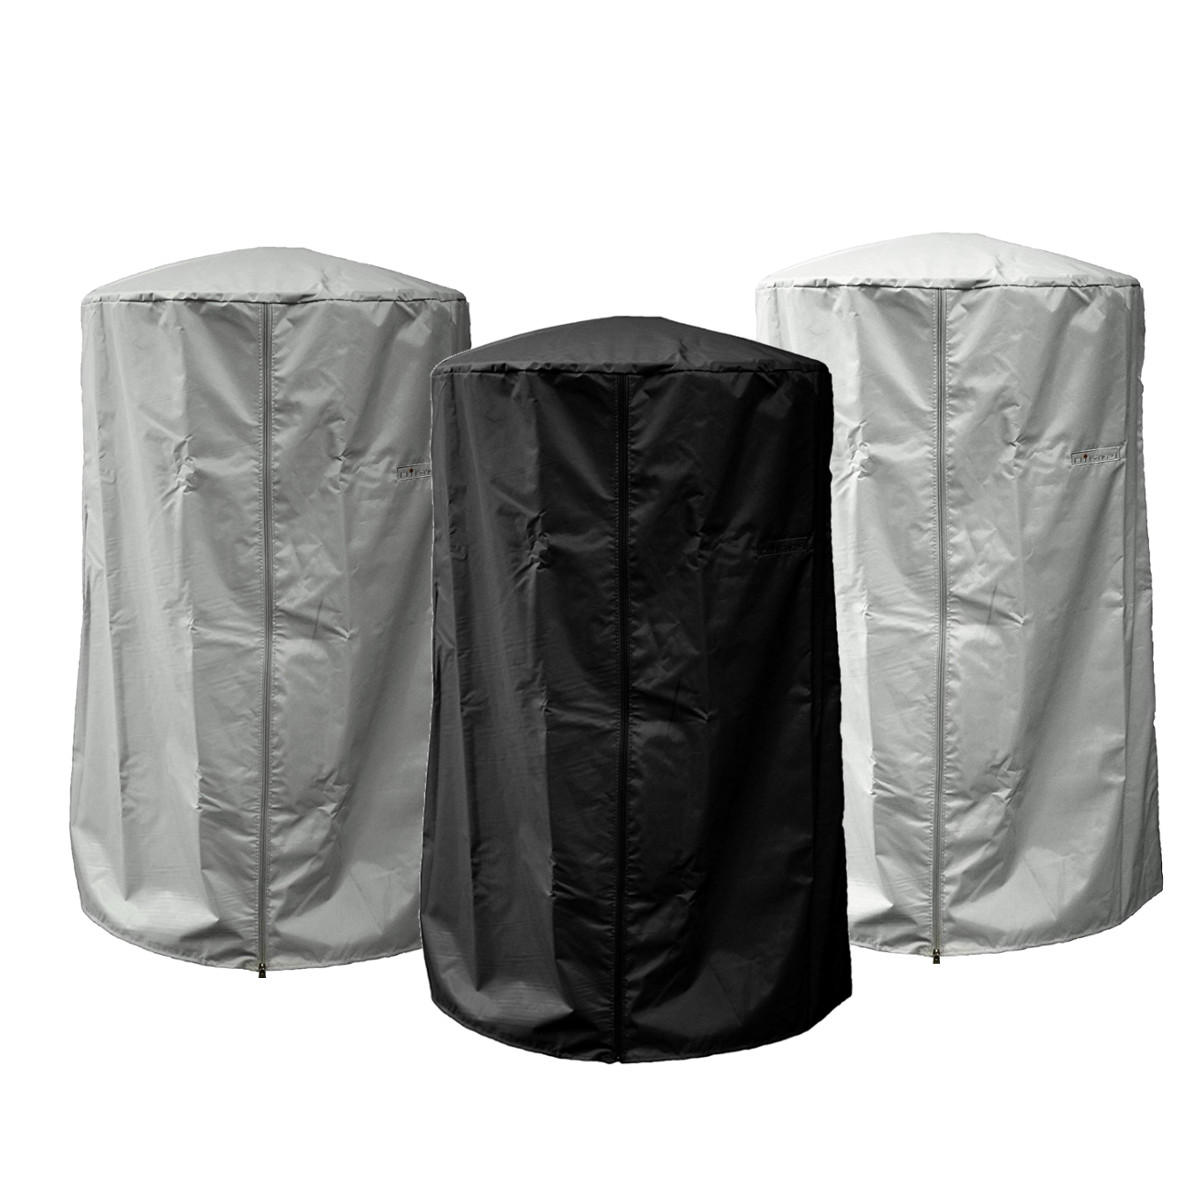 86/'/' Gas Heater Cover Freestanding Patio Polyester Waterproof Protector Outdoor